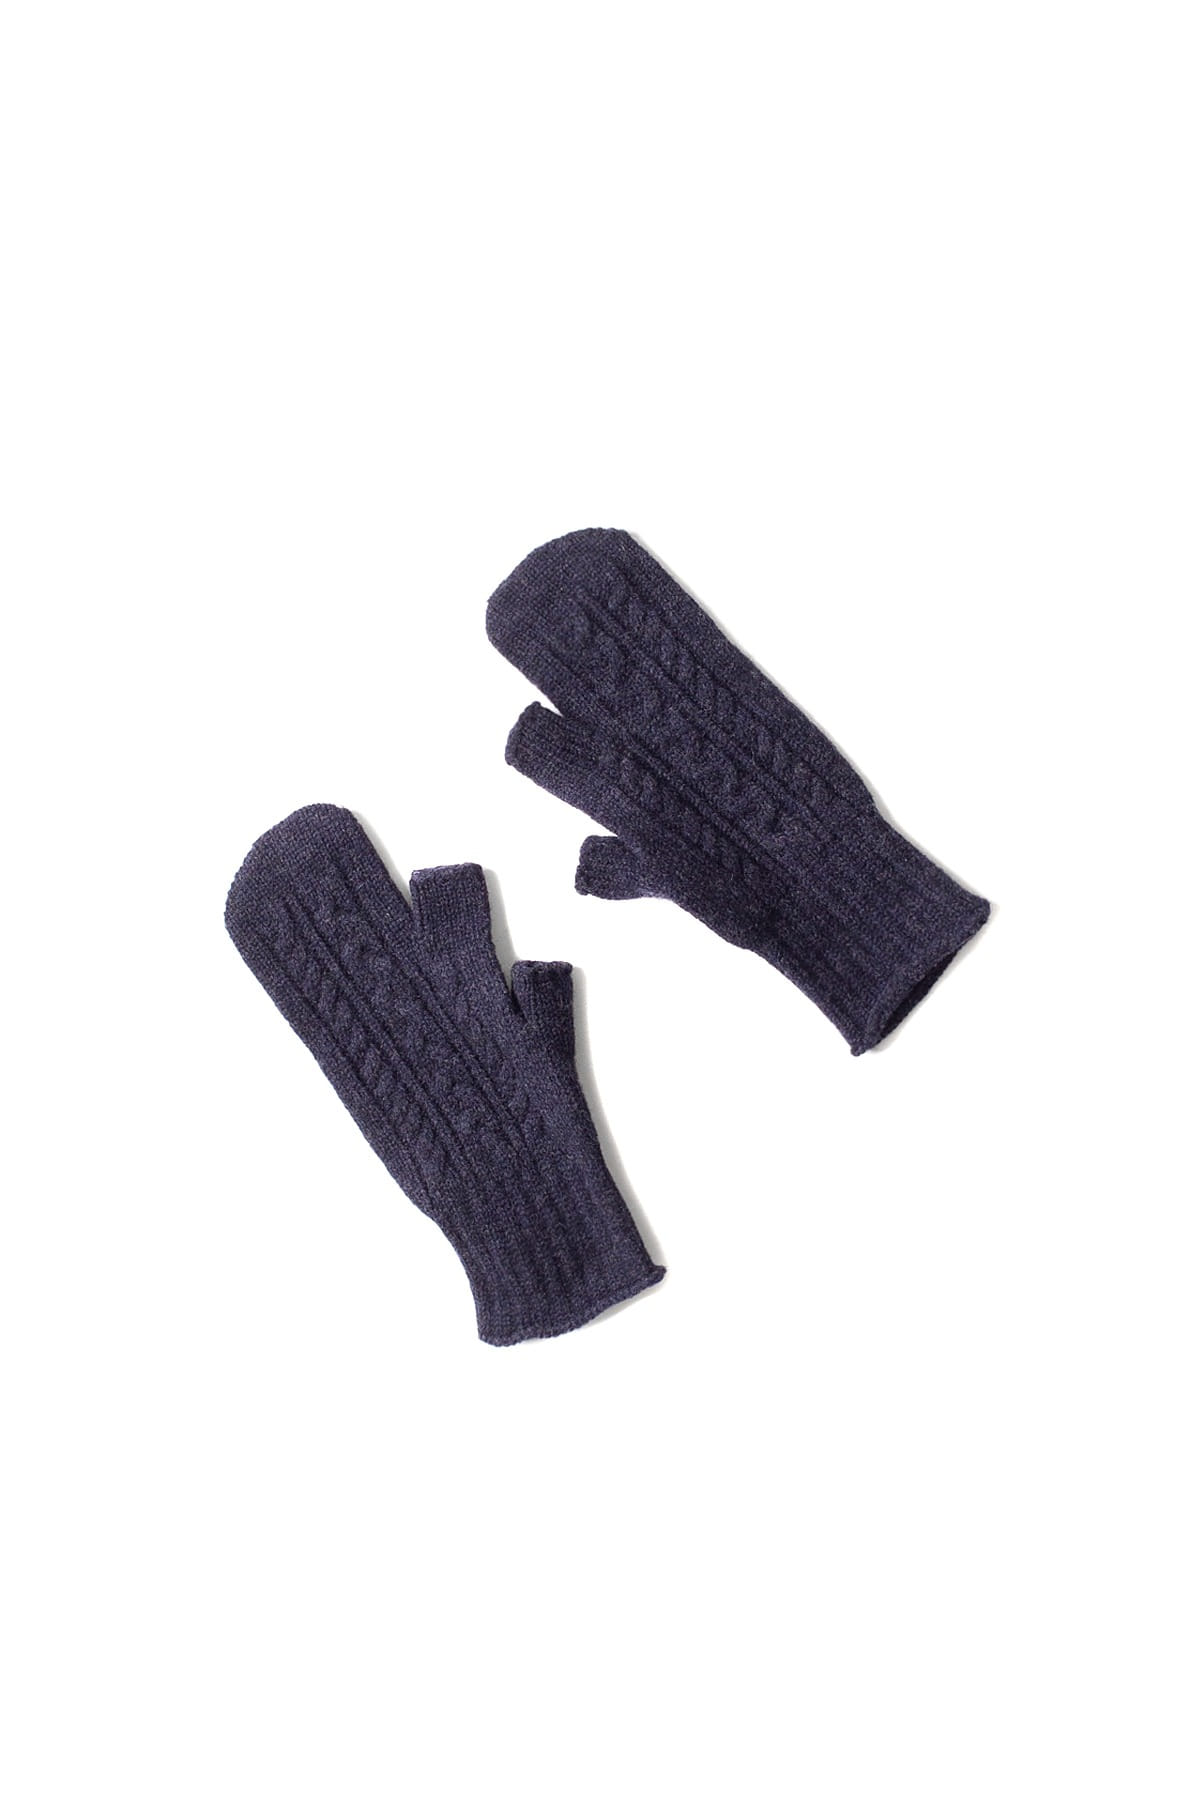 Eastlogue :  Rifle Gloves (Navy)